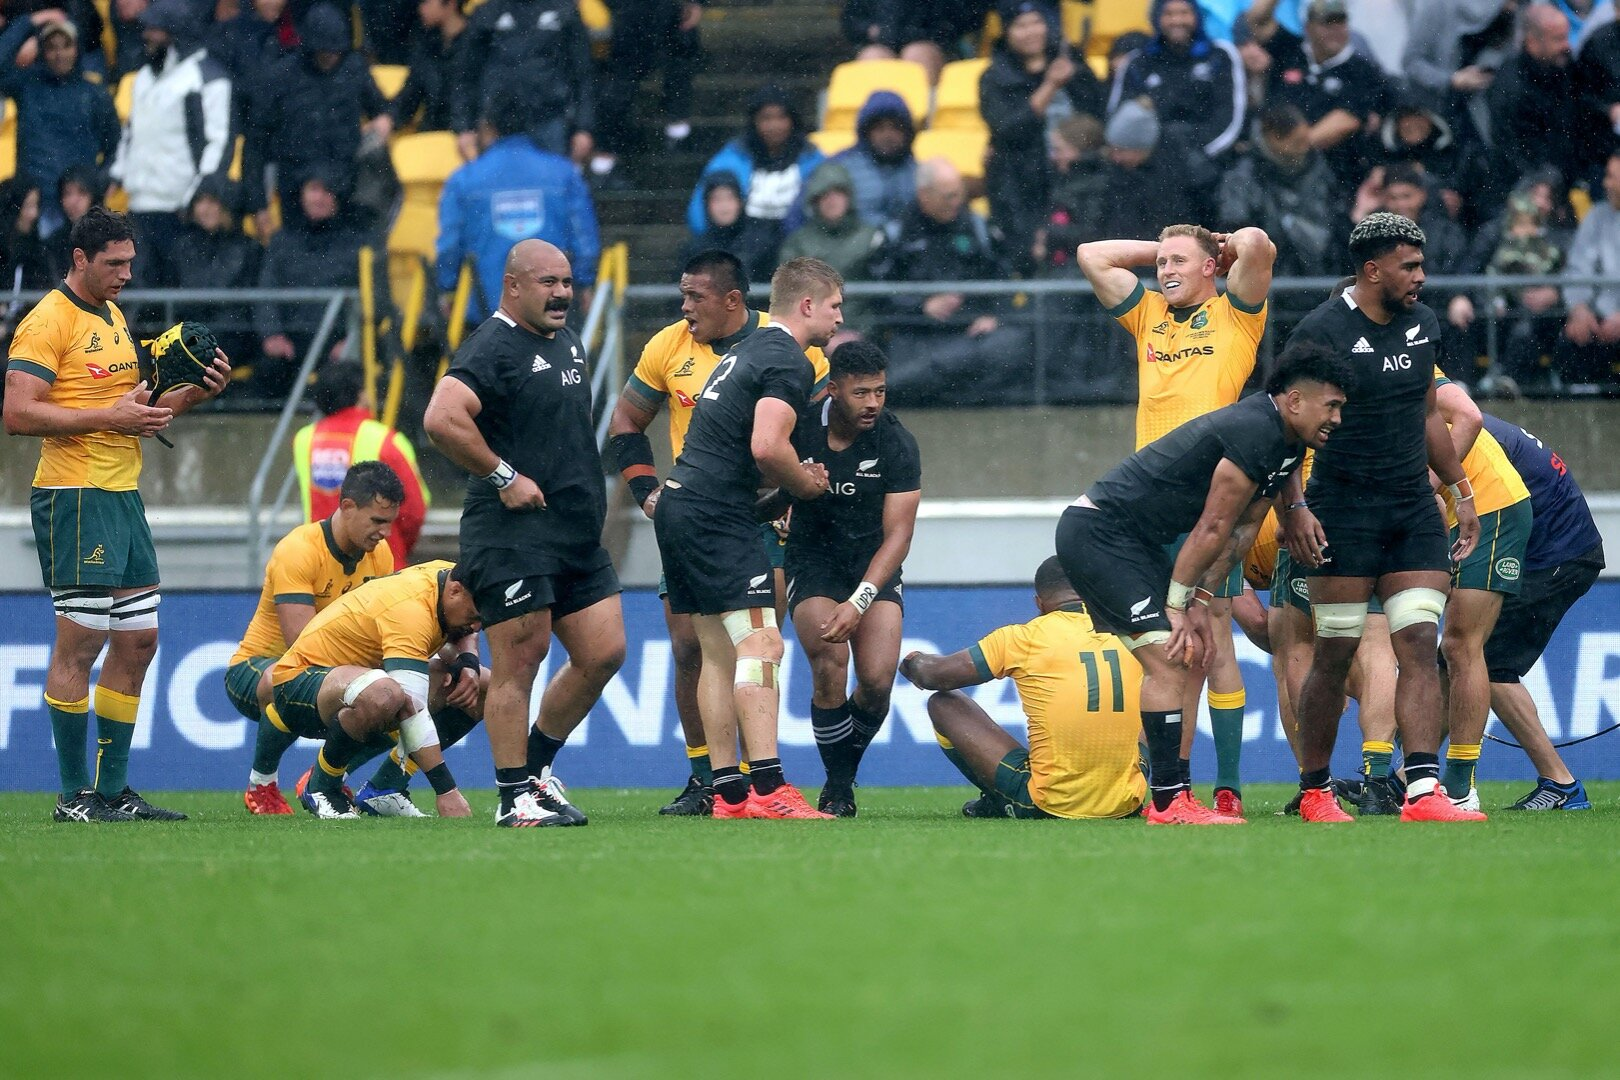 'One of the most incredible Test matches' - All the best social media reaction after thrilling Bledisloe Cup opener